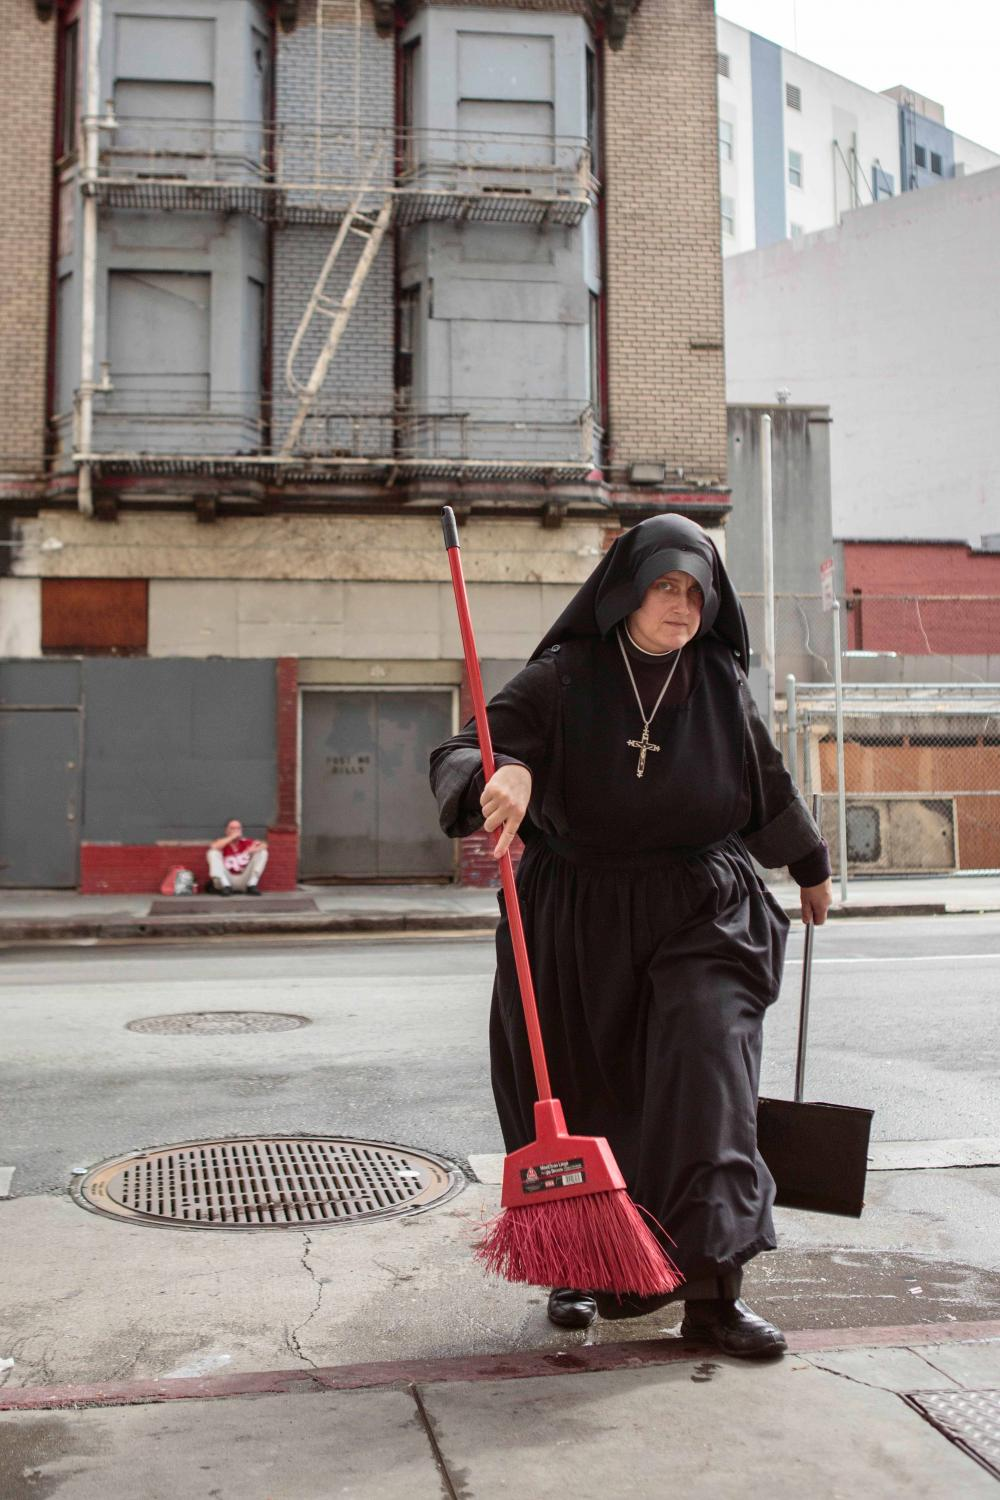 Sister Mary Benedicte approaches to enter the Fraternite Notre Dame Mary of Nazareth Soup Kitchen on Turk Street after sweeping the street on Monday, September 29, 2014, in San Francisco, California.